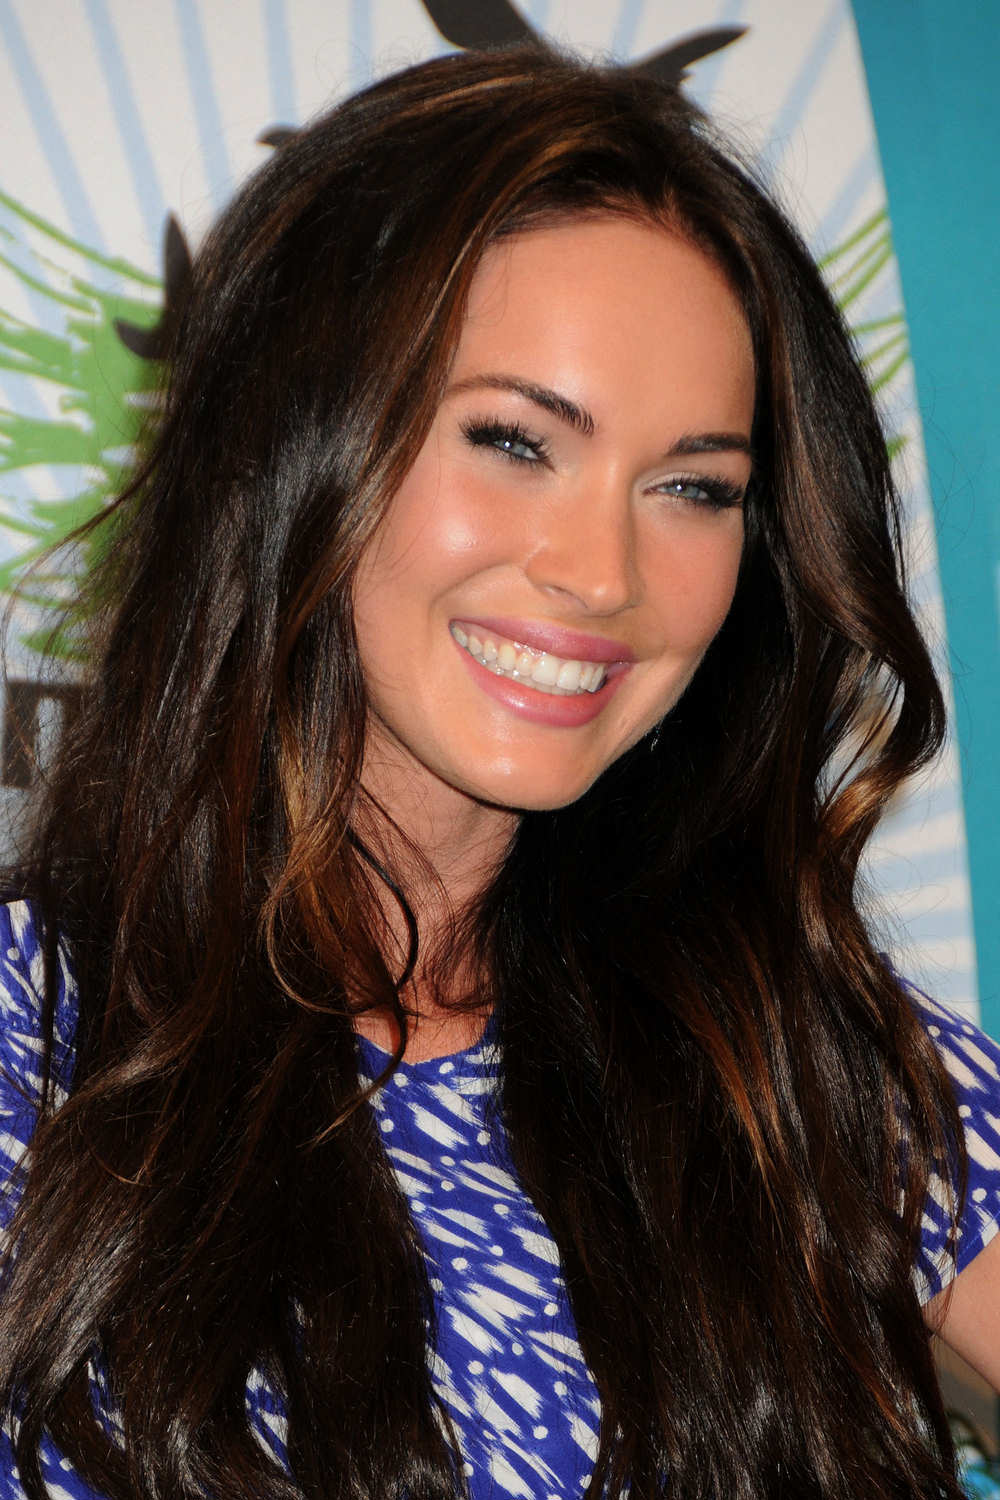 Pictures of Megan Fox before plastic surgery in the beautiful pink